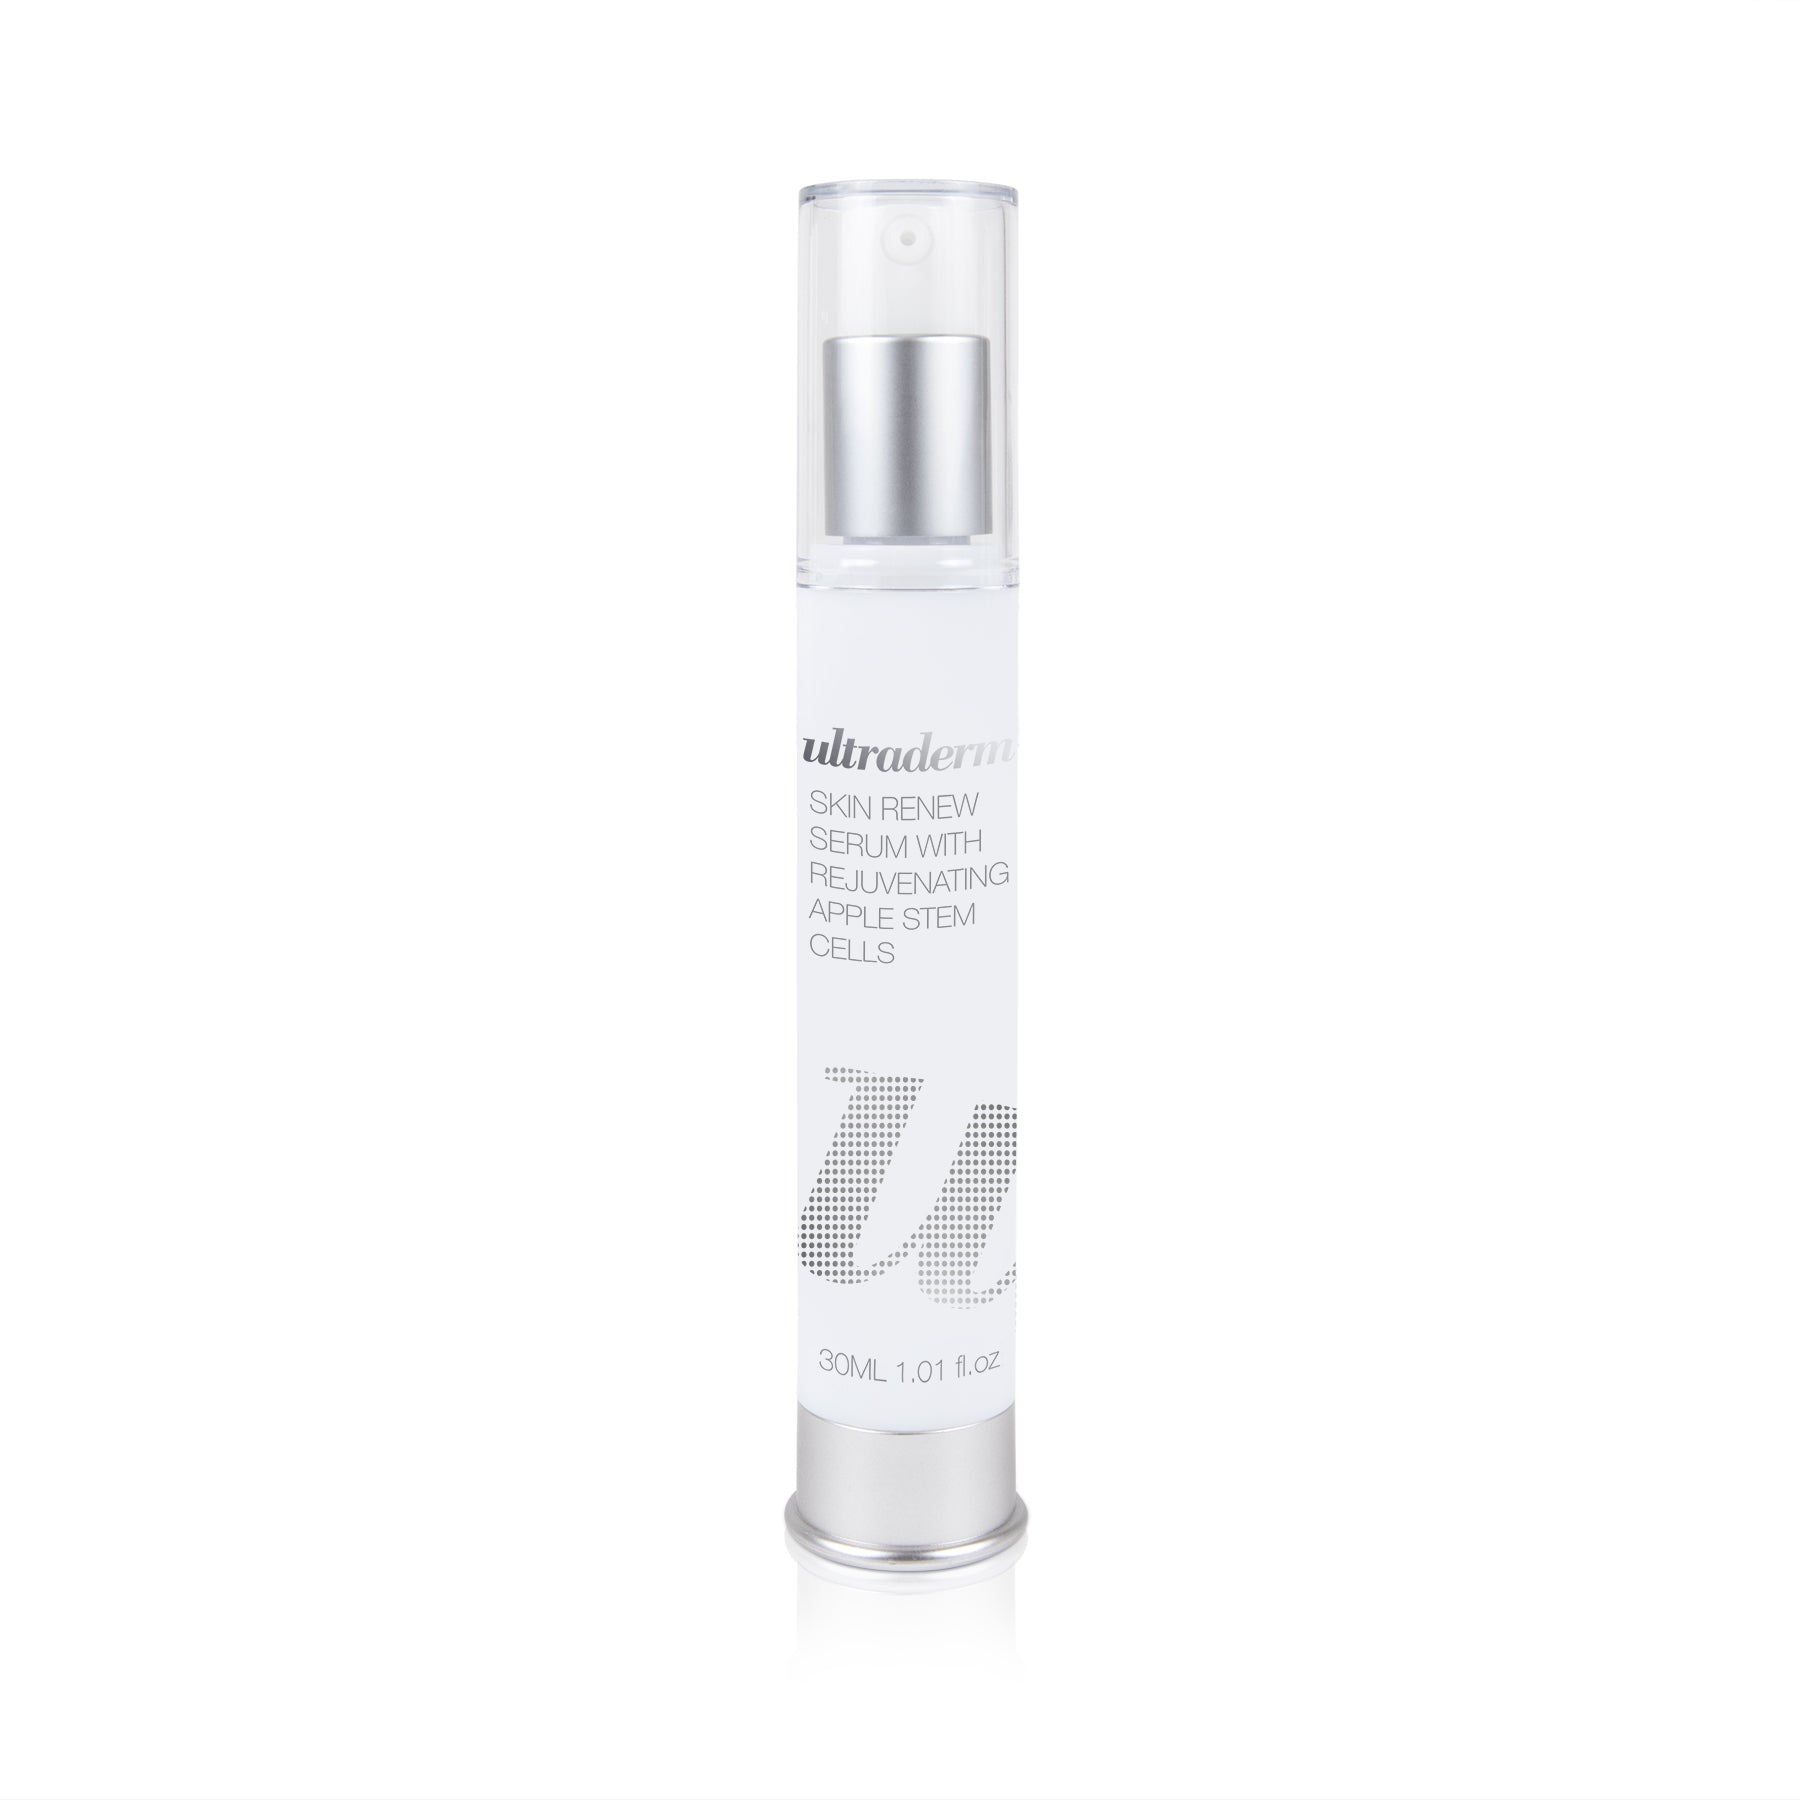 Ultraderm Skin Renew Serum with Rejuvenating Apple Stem Cells